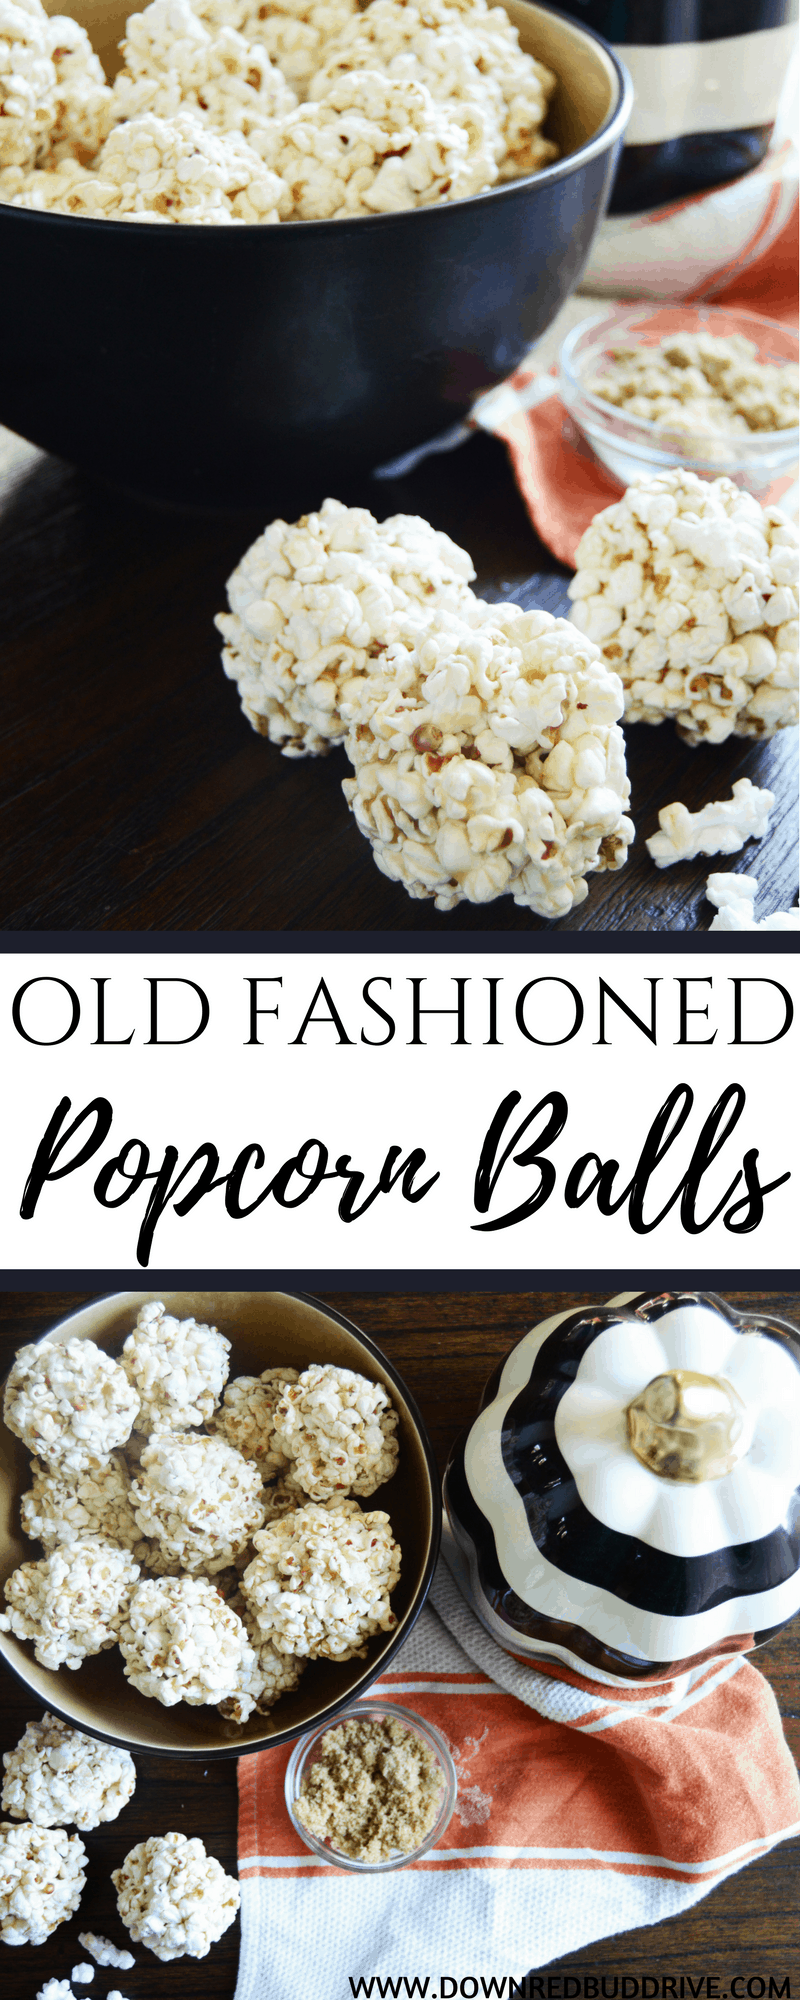 Old Fashioned Kettle Corn Recipes